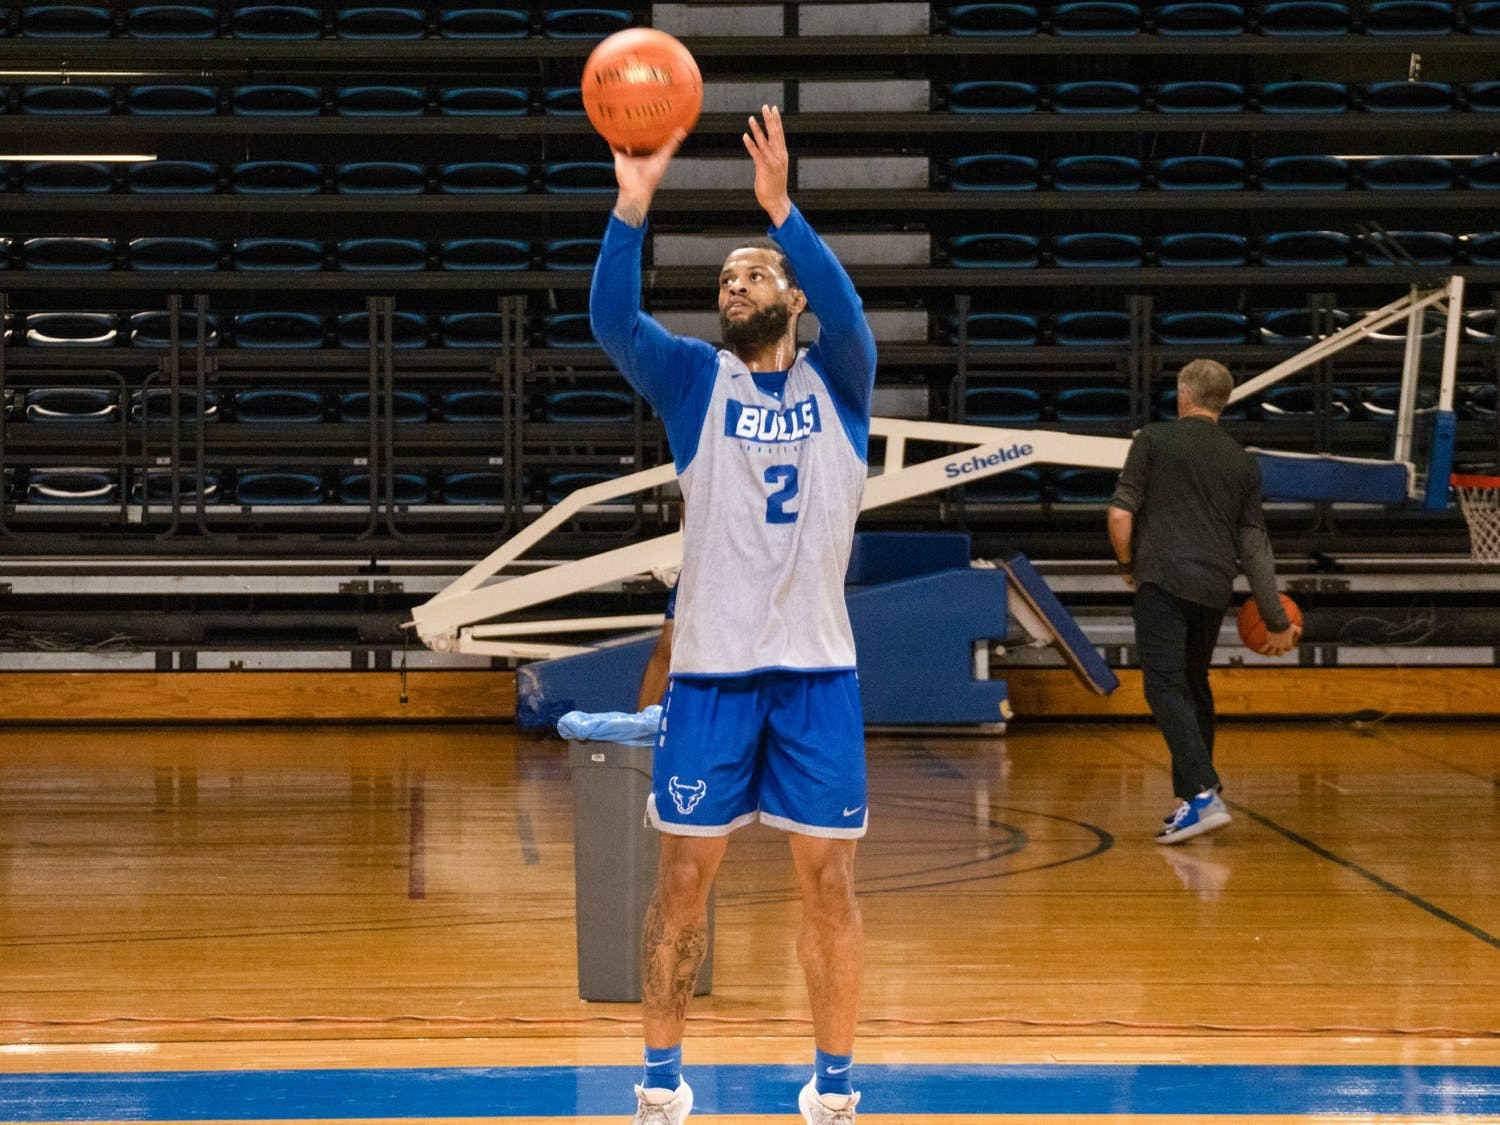 Senior guard Antwain Johnson shoots a 3-pointer during practice at Alumni Arena. Johnson has scored 41 points for the Bulls this season.